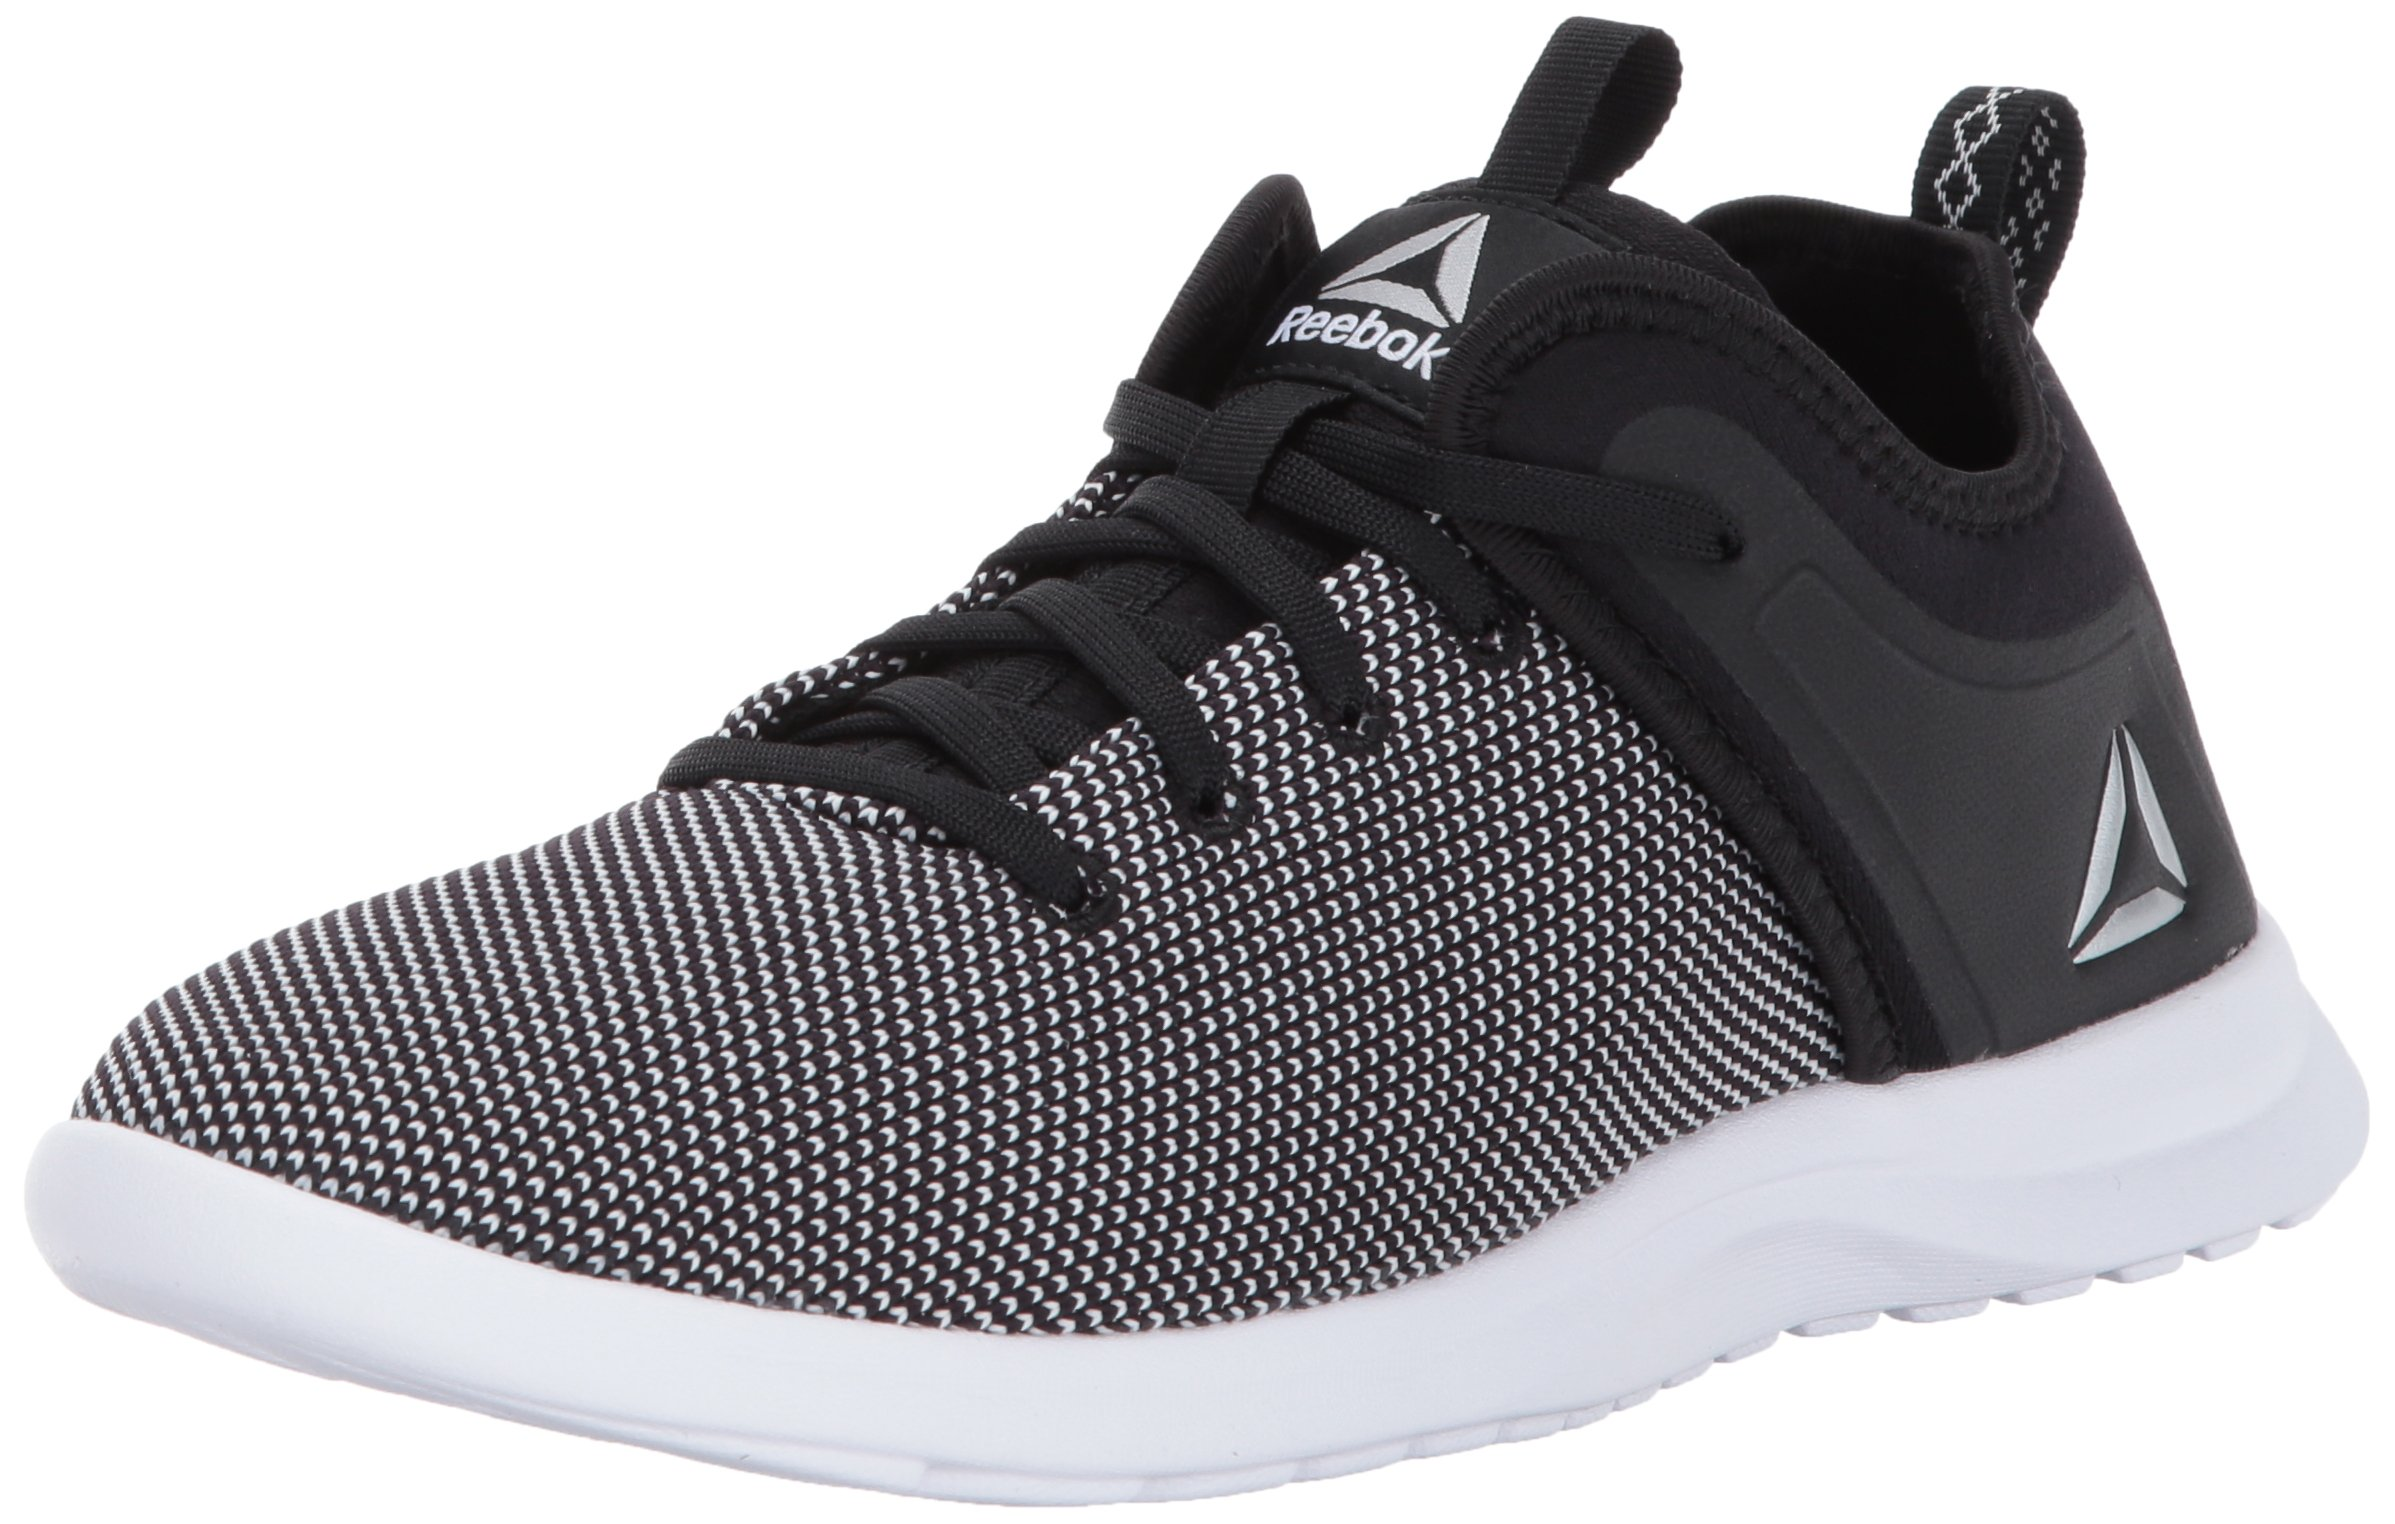 Reebok Women's Solestead Track Shoe, Black/White, 7.5 M US